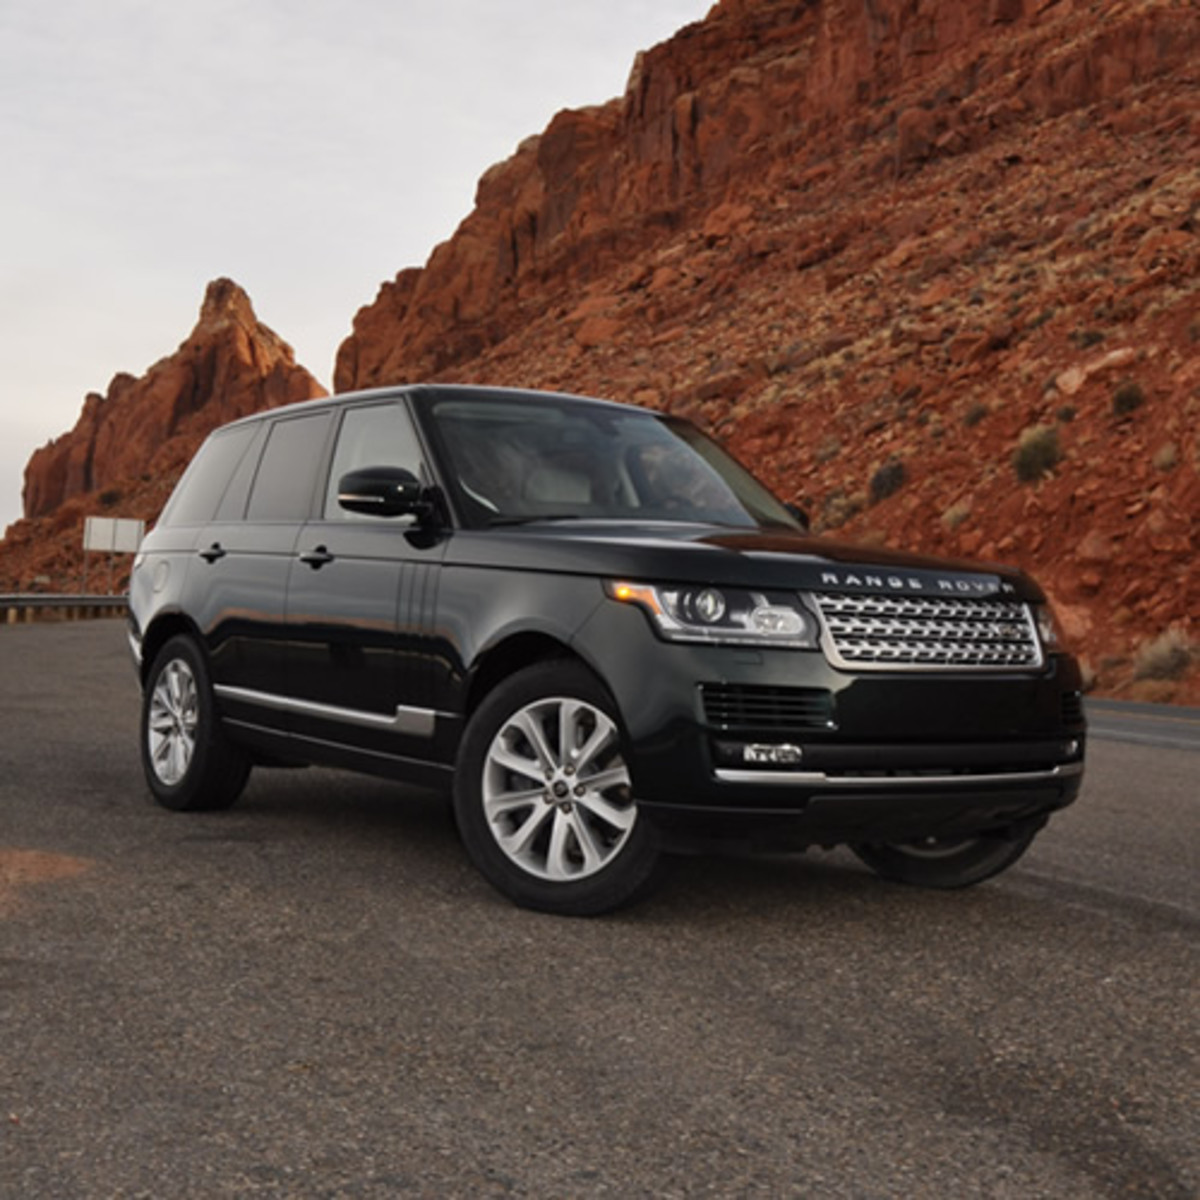 The 2013 Range Rover